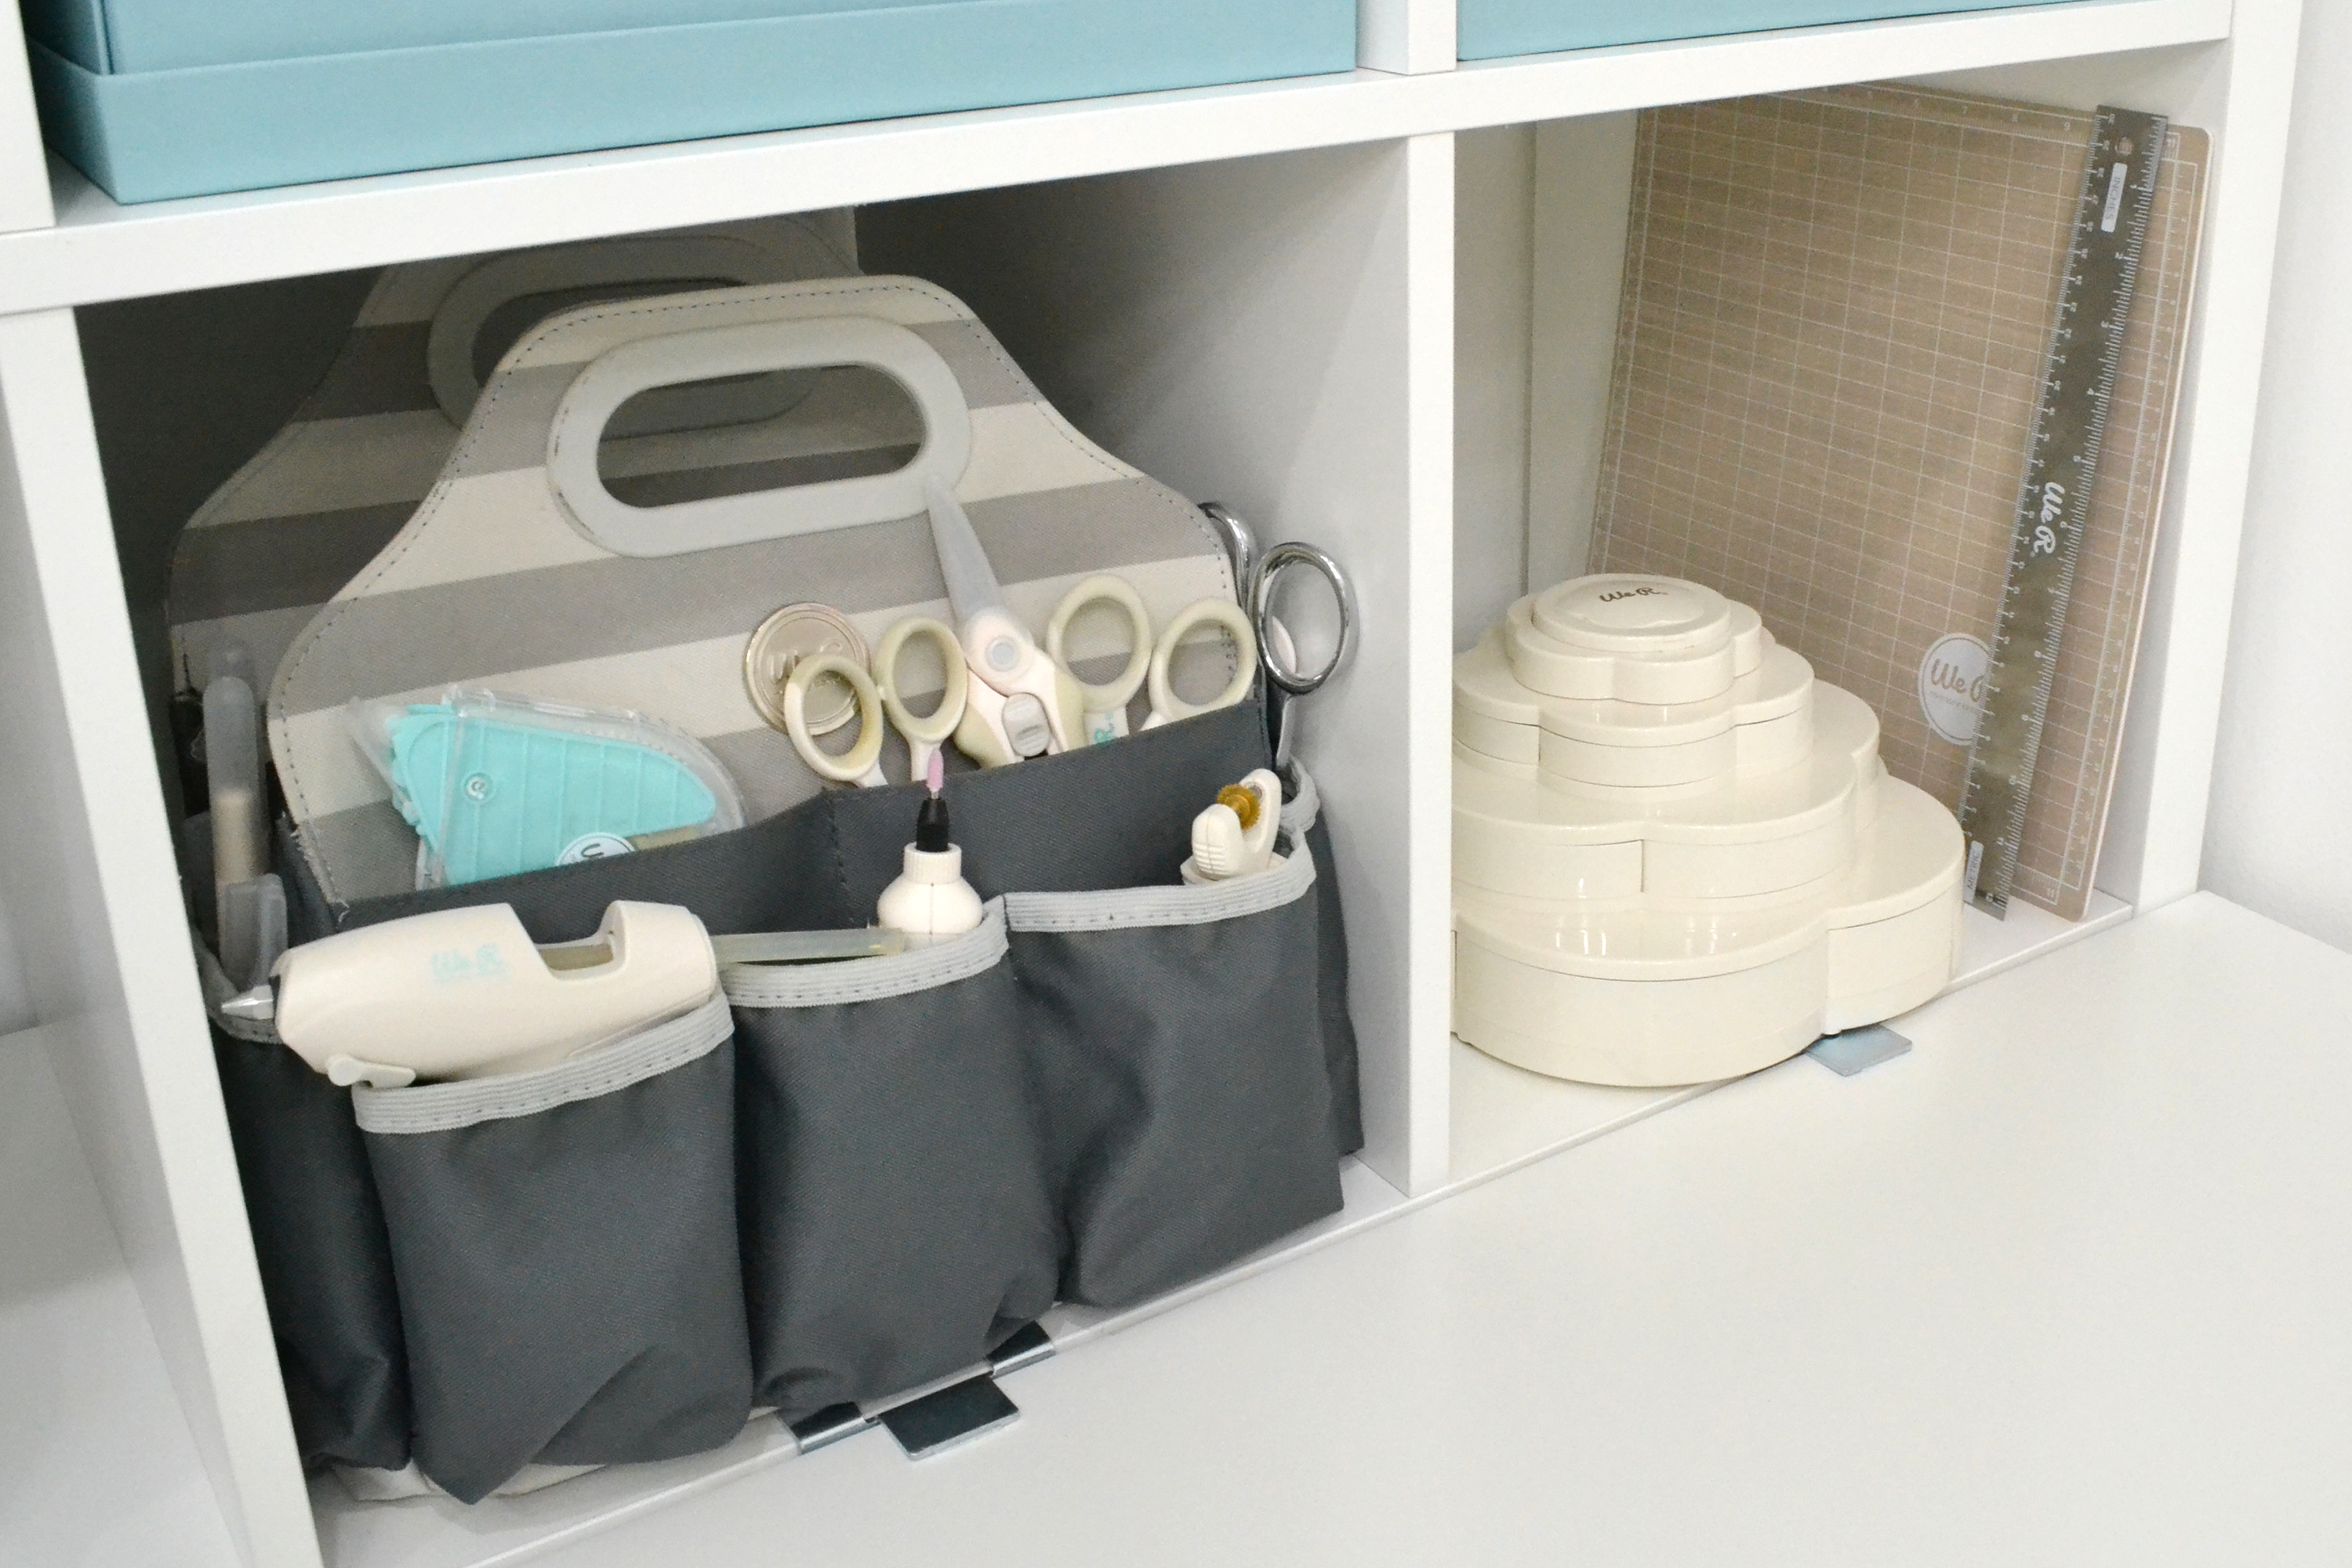 Crafter's Tote Bag and Bloom Storage by We R Memory Keepers featured in Aly Dosdall's craft room